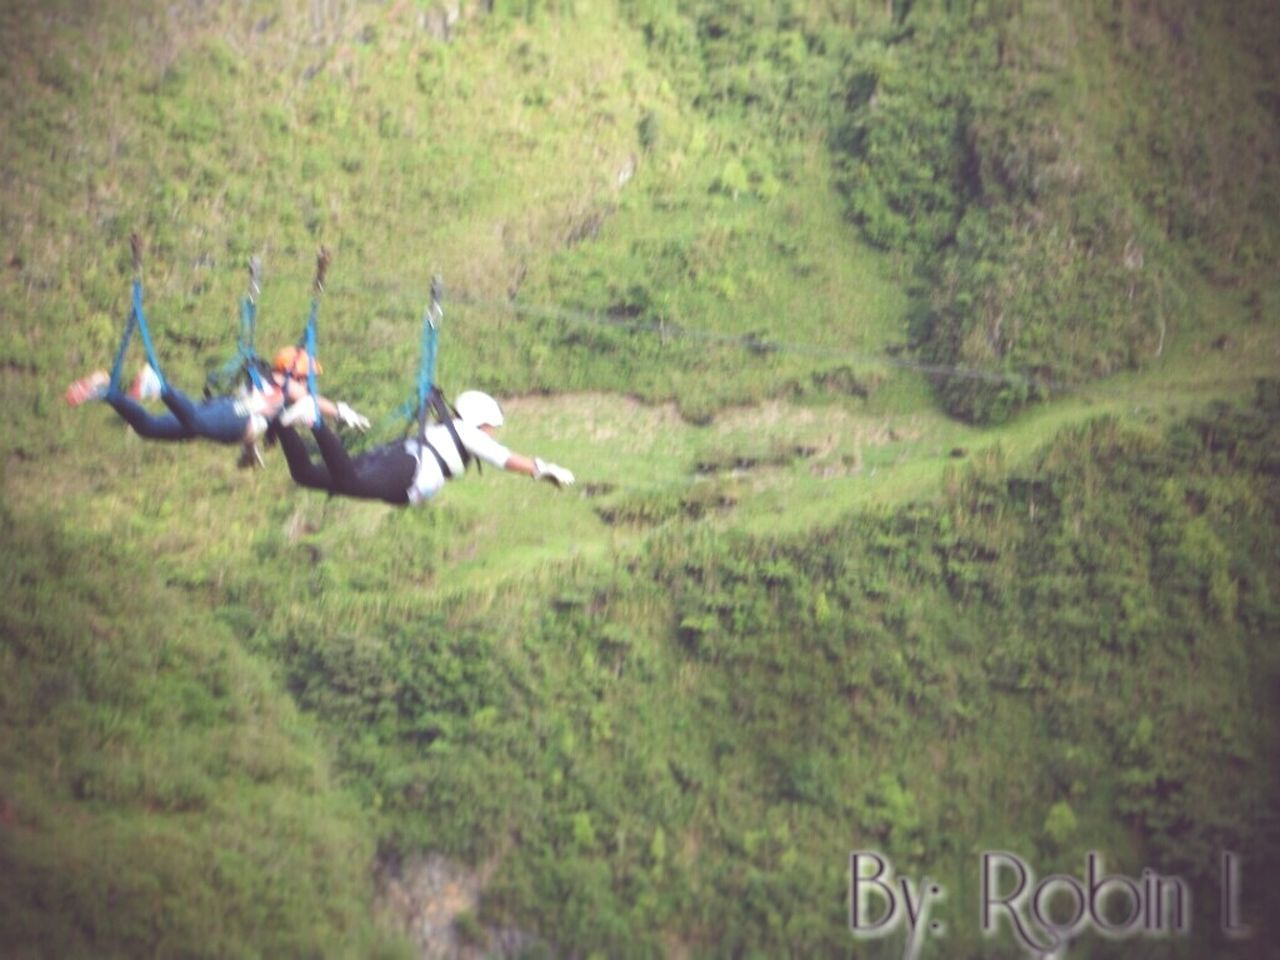 Canoping Copyright© Relaxing Original Photography Eyembestshots Girl Guy Nature Photography XtremeSports Green People Enjoying The View Sports BañosEcuador Baños -Ecuador Bañosdeaguasanta Ecuador Nature_collection